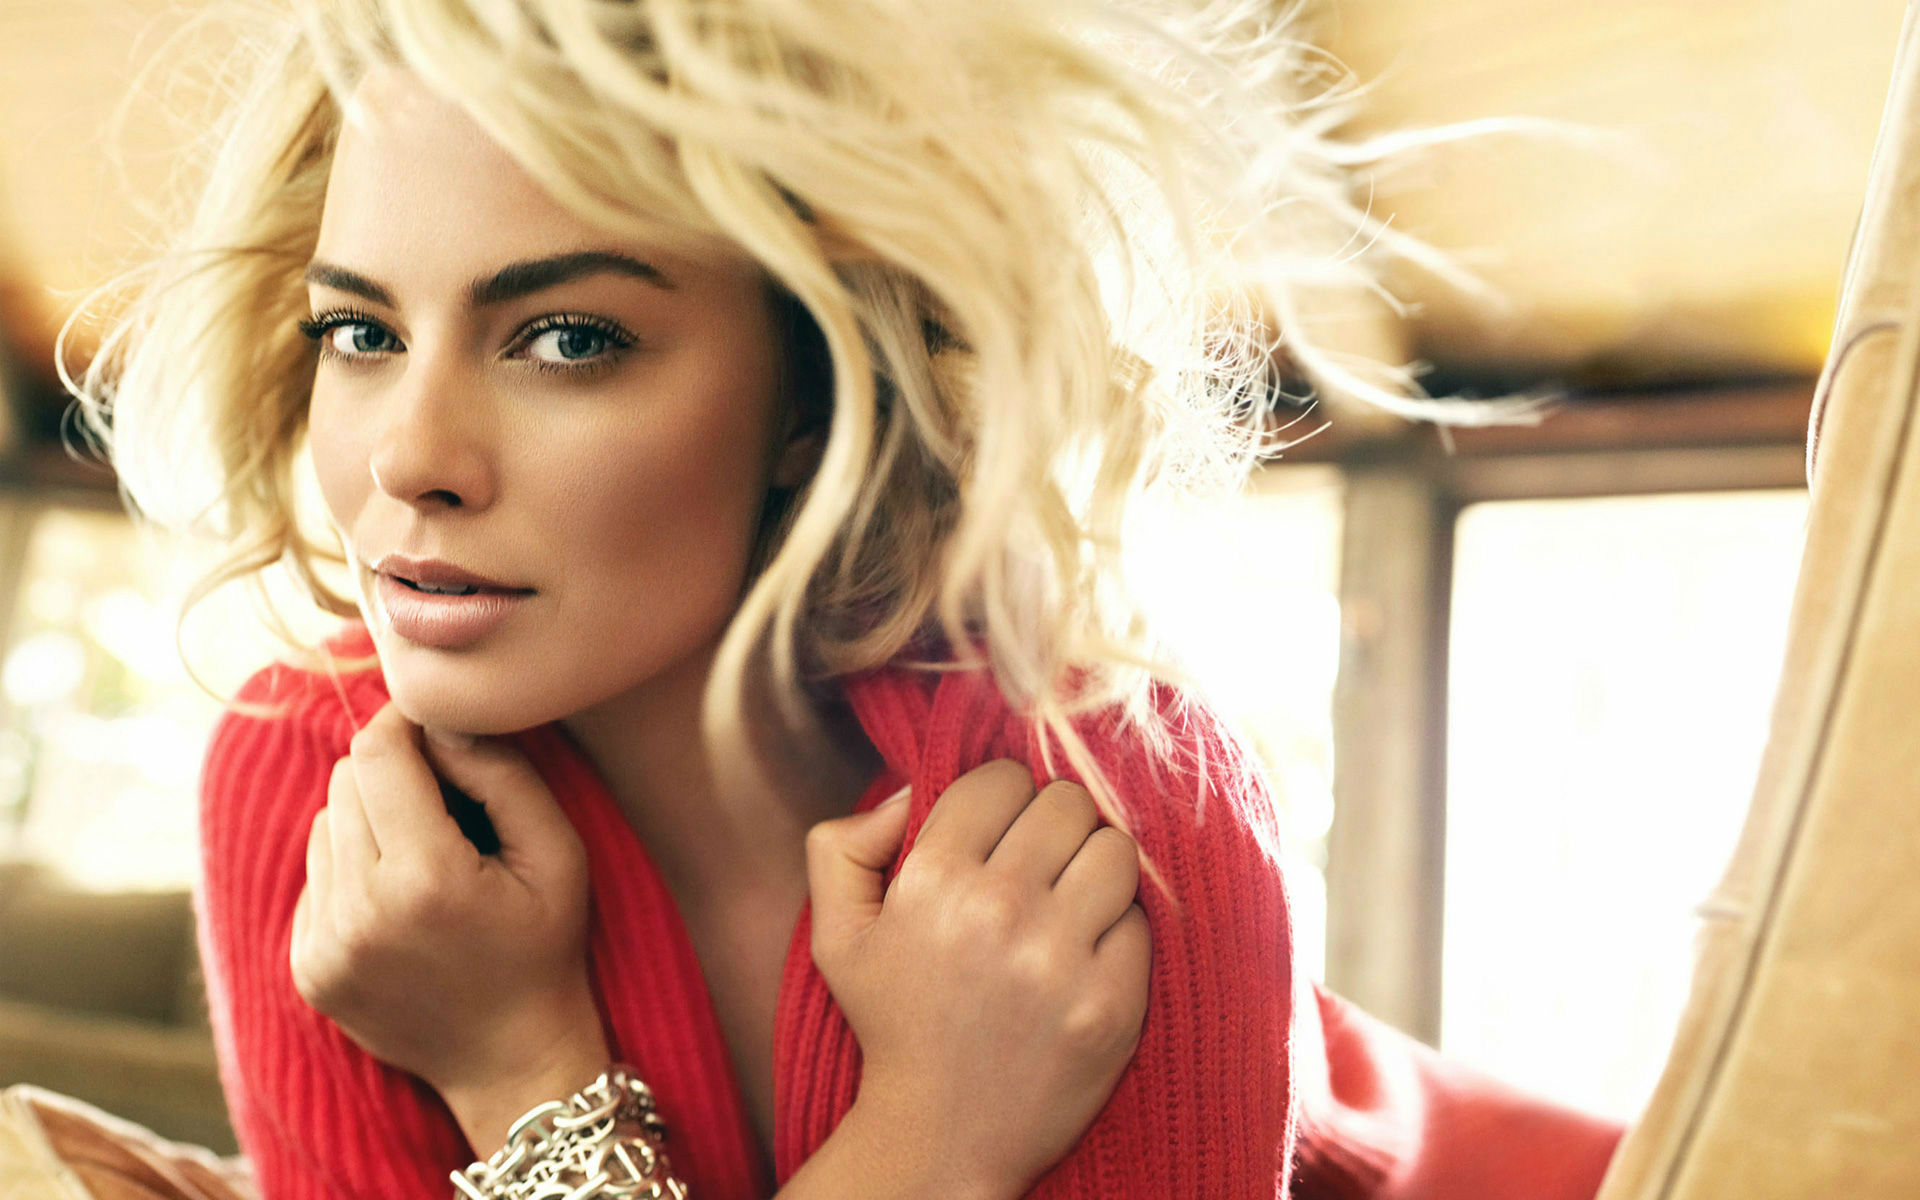 3ba0fa4530 Margot Robbie Widescreen Wallpaper